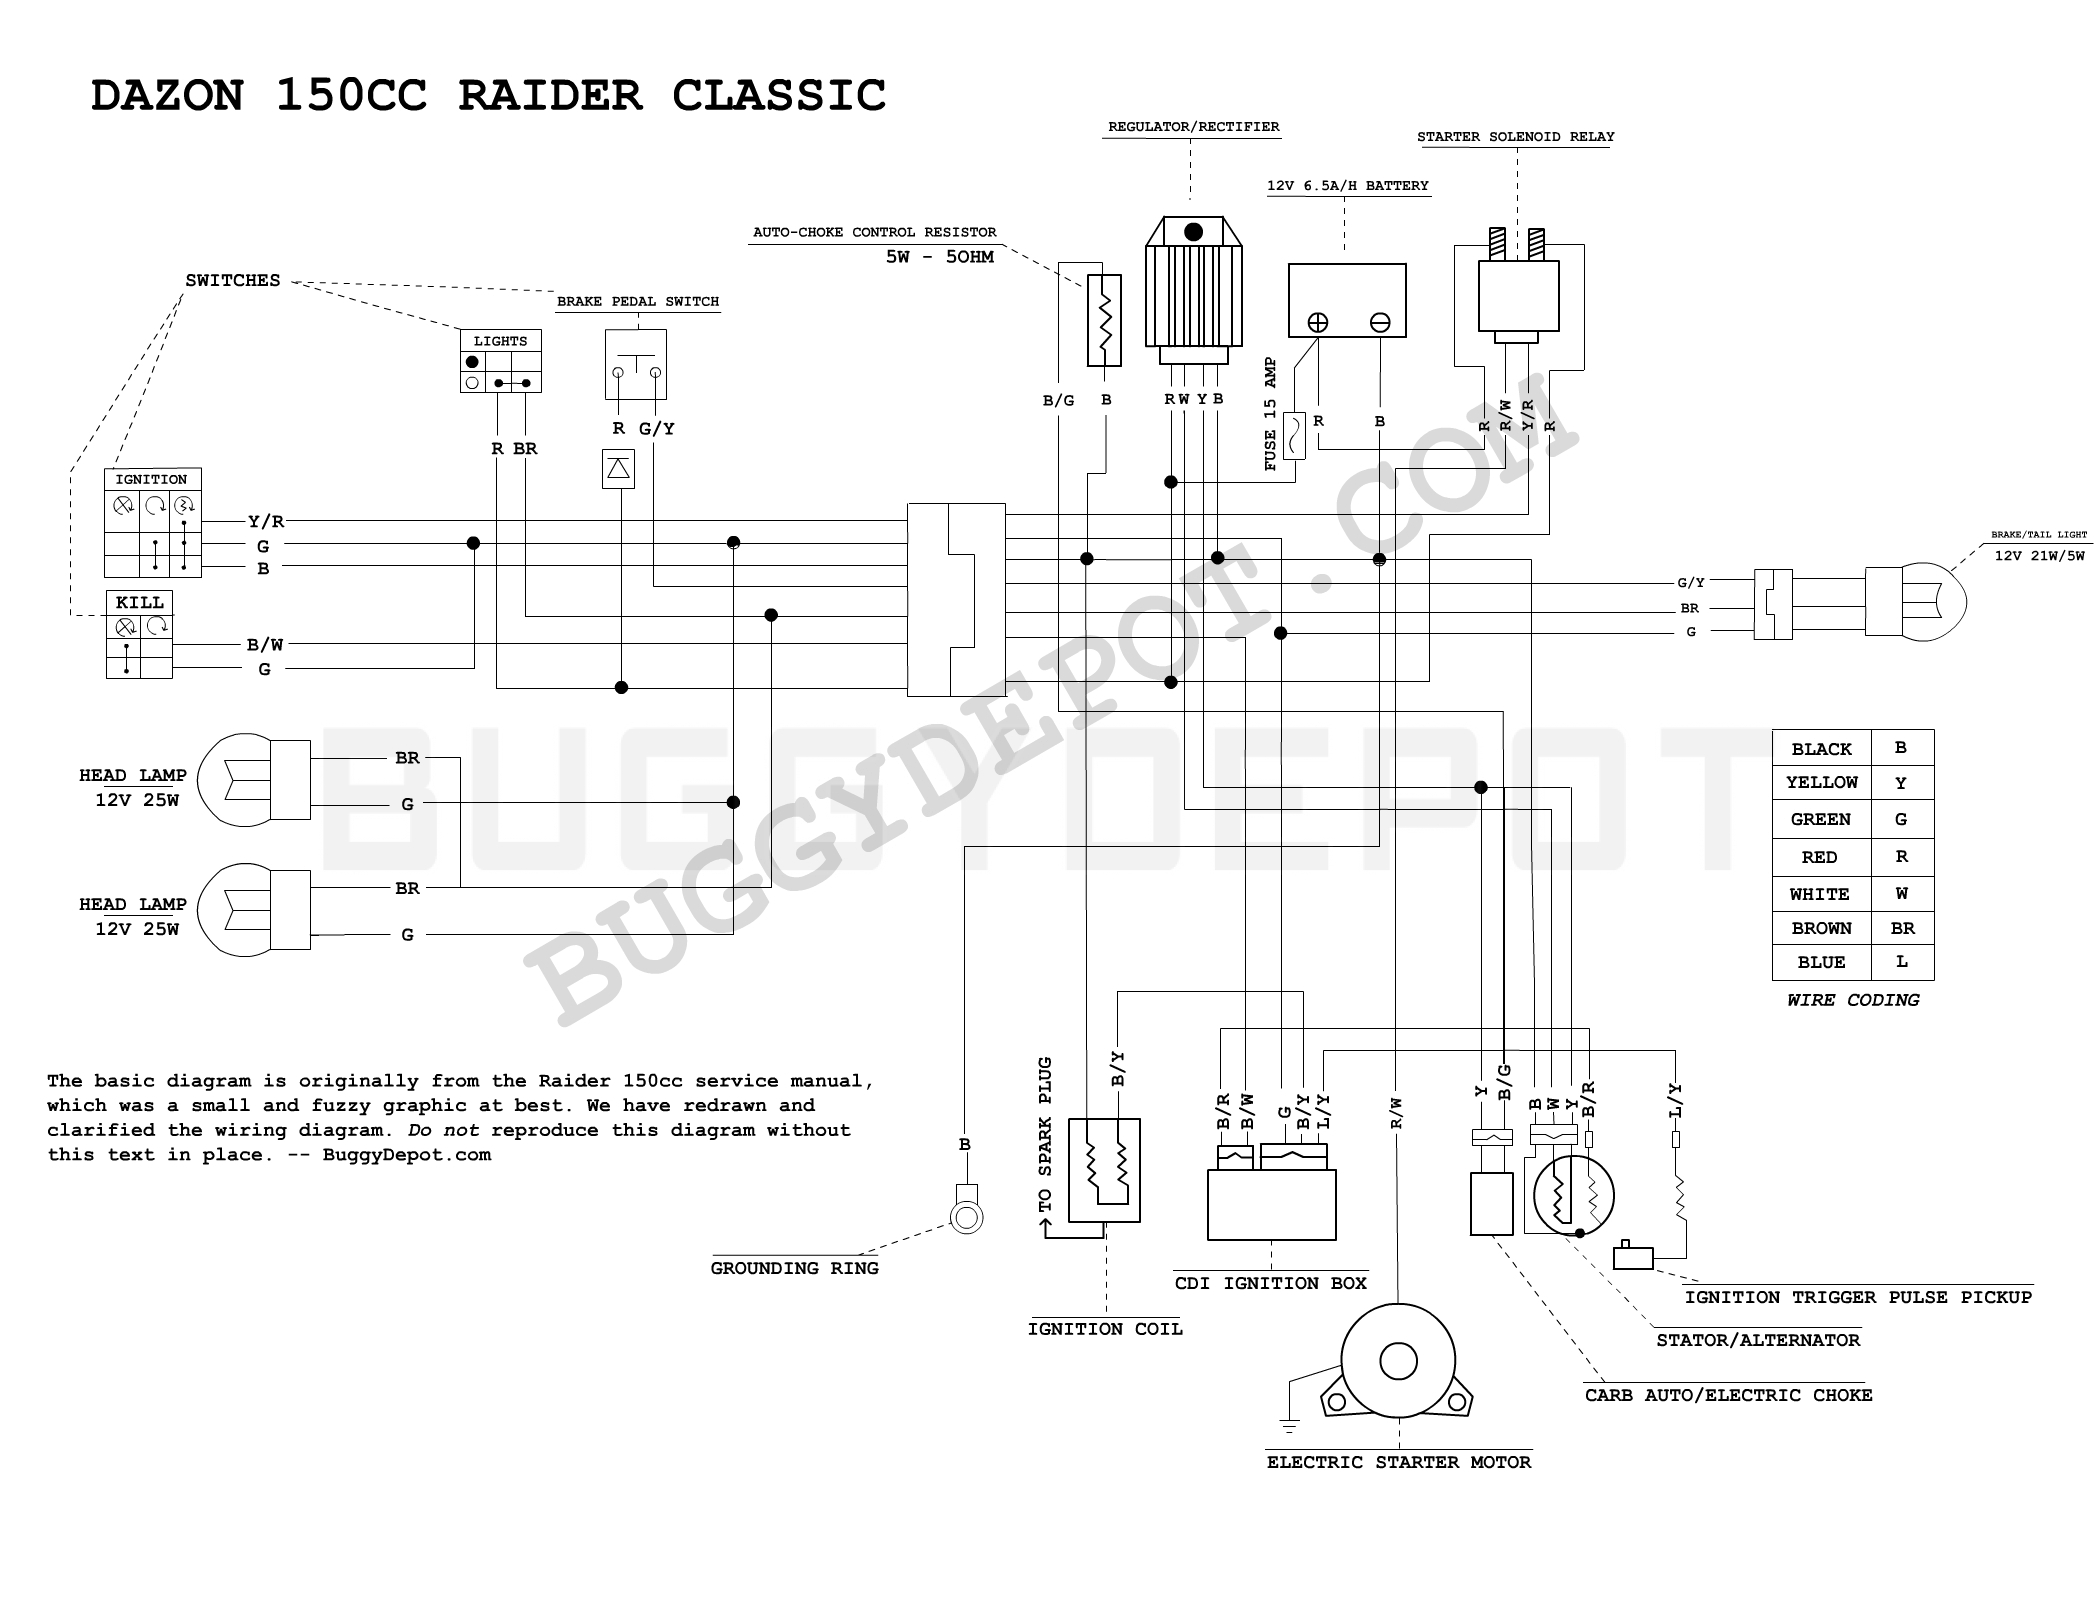 article_33_1278205207 dazon raider classic wiring diagram buggy depot technical center chinese 4 wheeler wiring diagram at virtualis.co